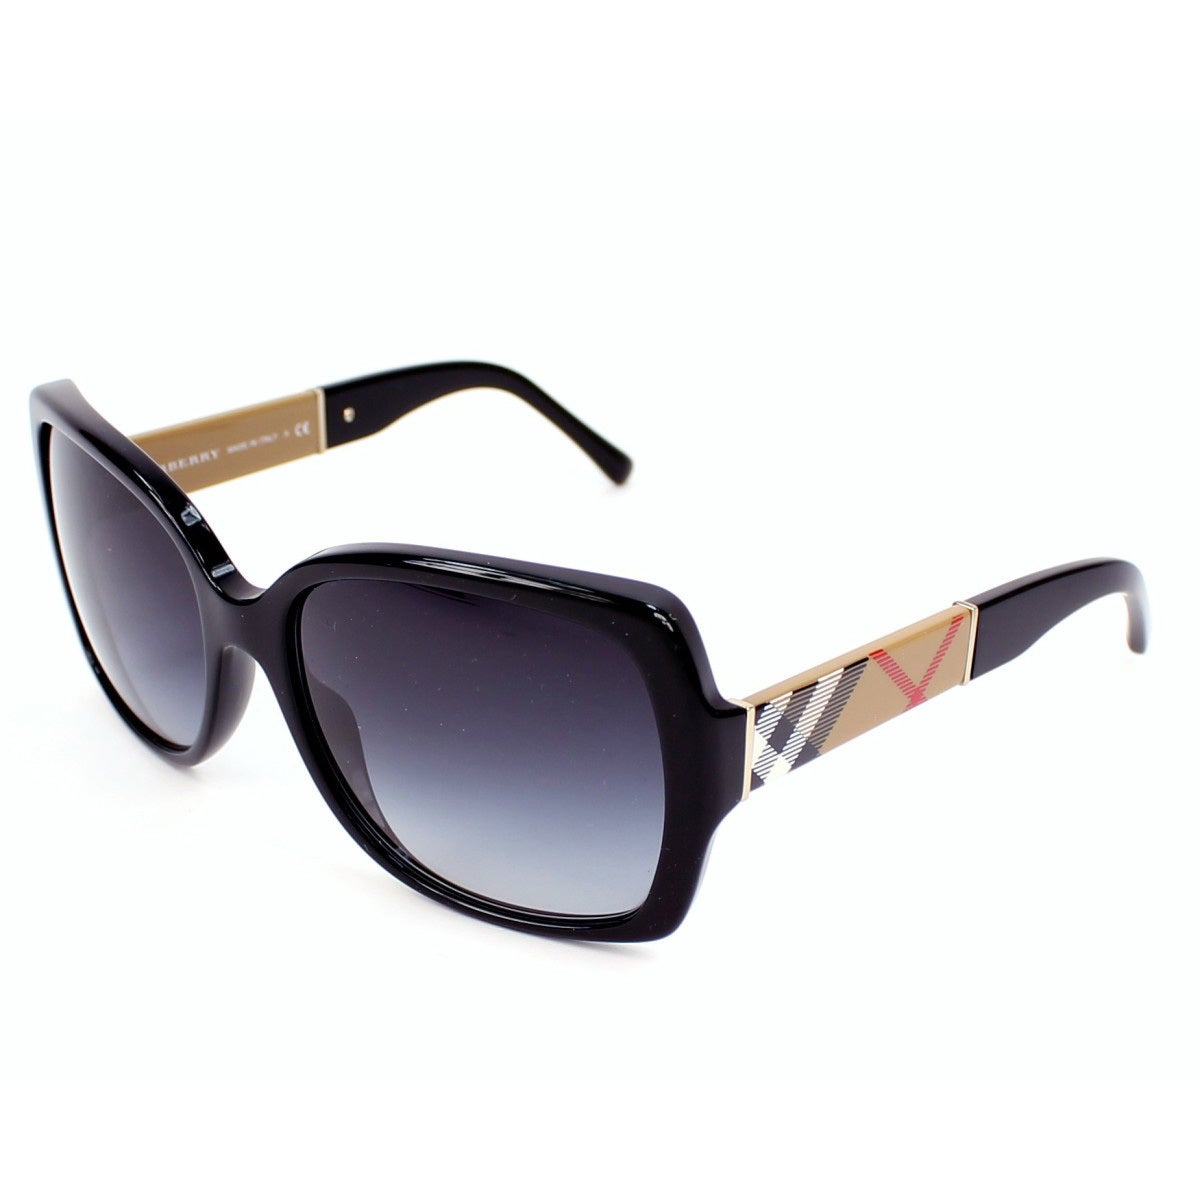 082a86e509 Shop Burberry Women s BE4160 34338G Black Square Sunglasses - Large ...